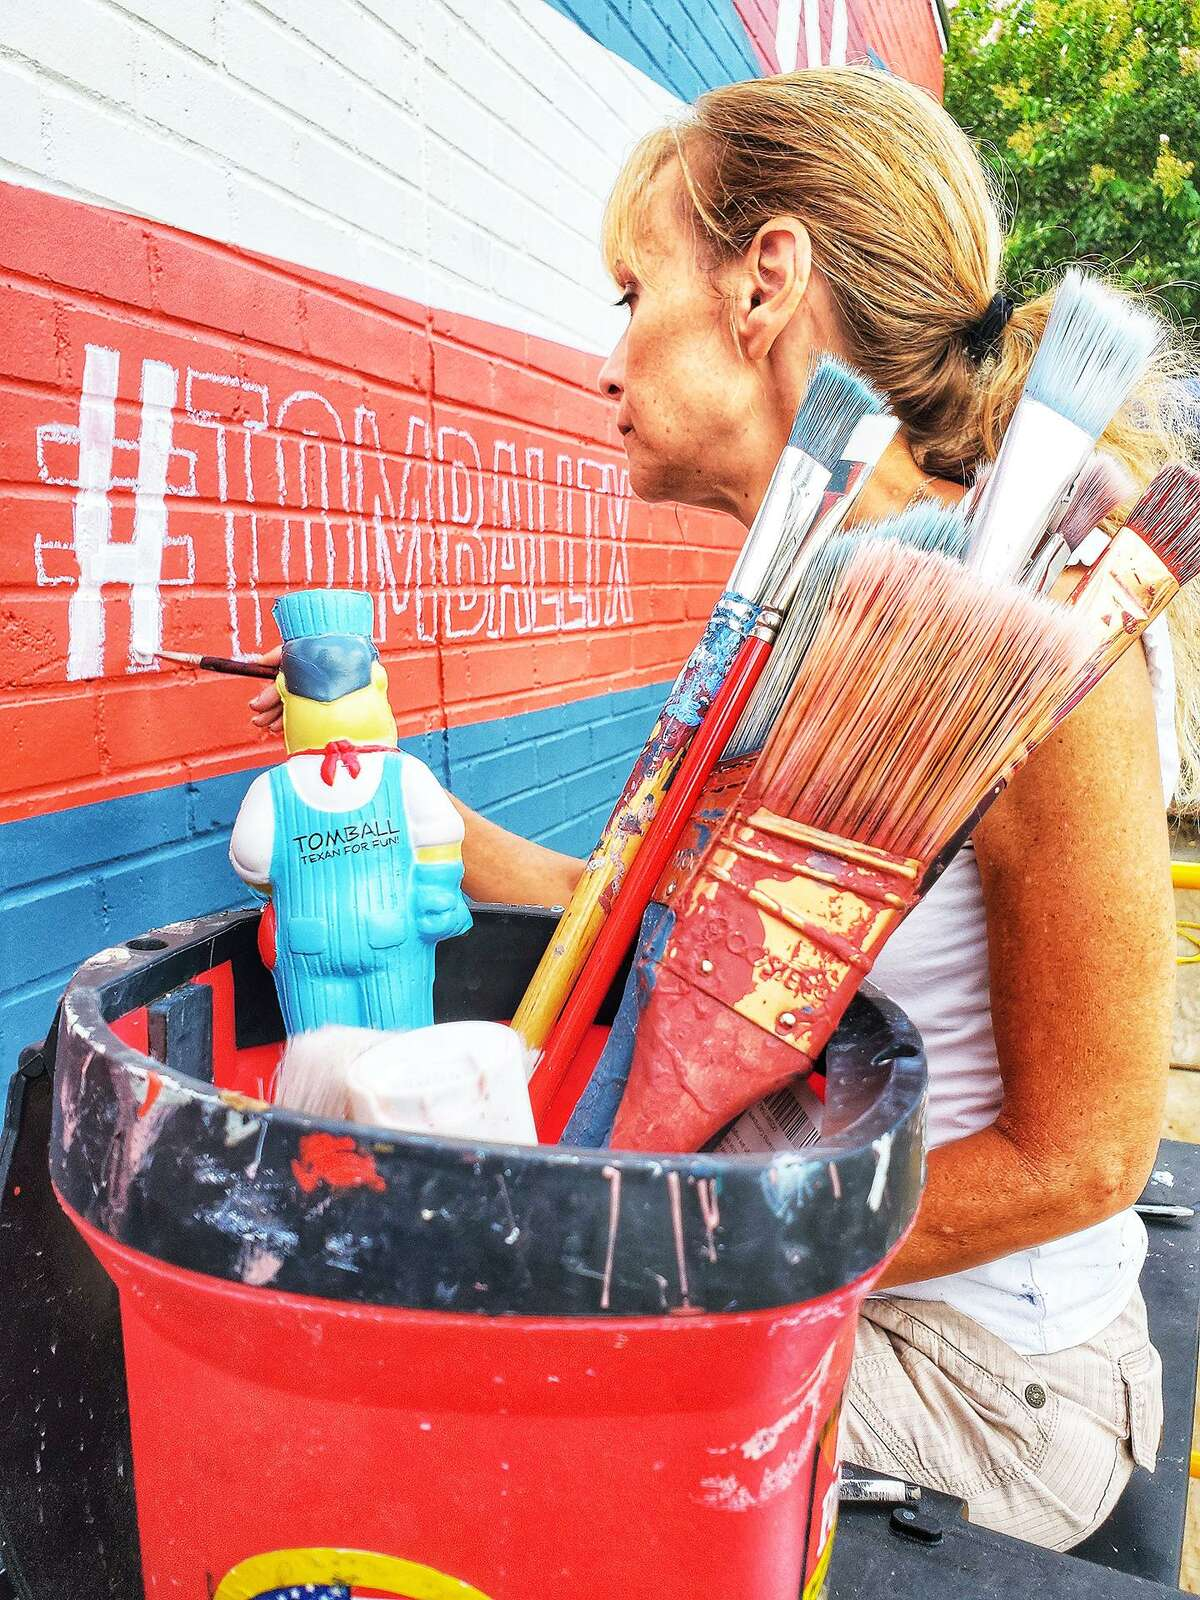 A stuffed Rusty Nails doll looks on as artist Beth Mankin paints on the lettering for the new mural for the city of Tomball. The wall is located at 214 W. Main at the Tomball Tourism and Marketing office.